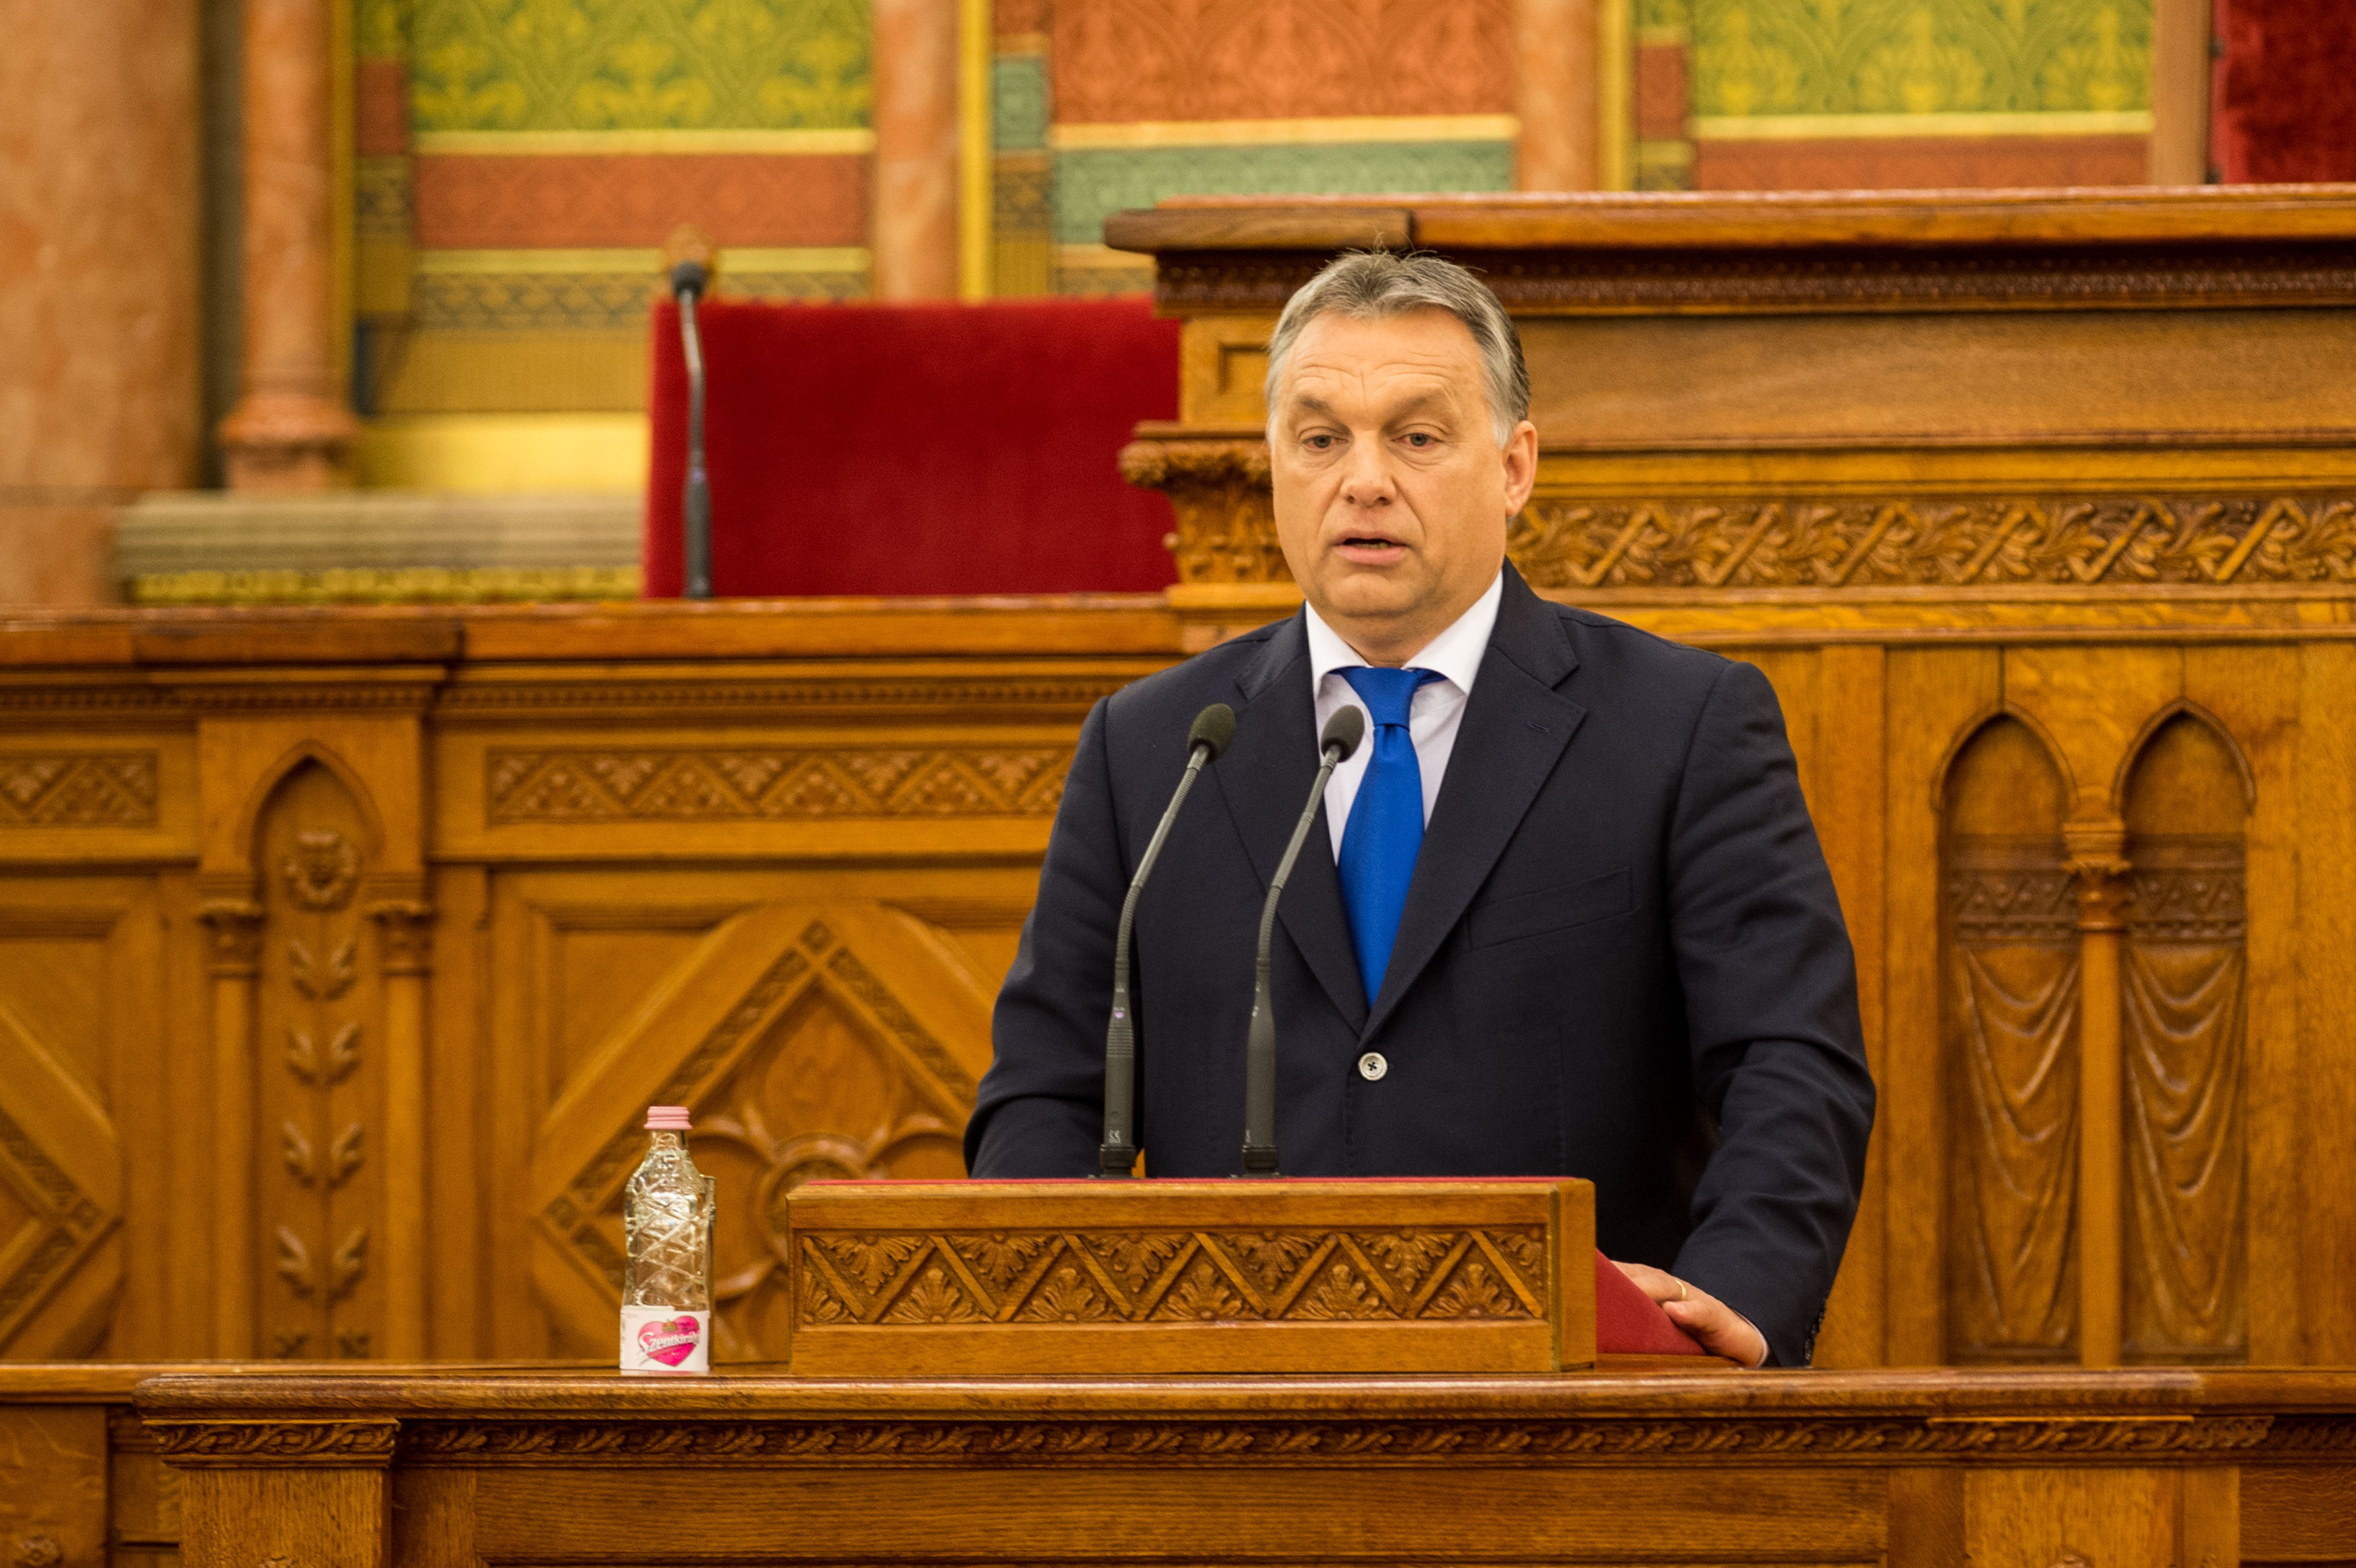 Photo: Gergely Botár/Cabinet Office of the Prime Minister/